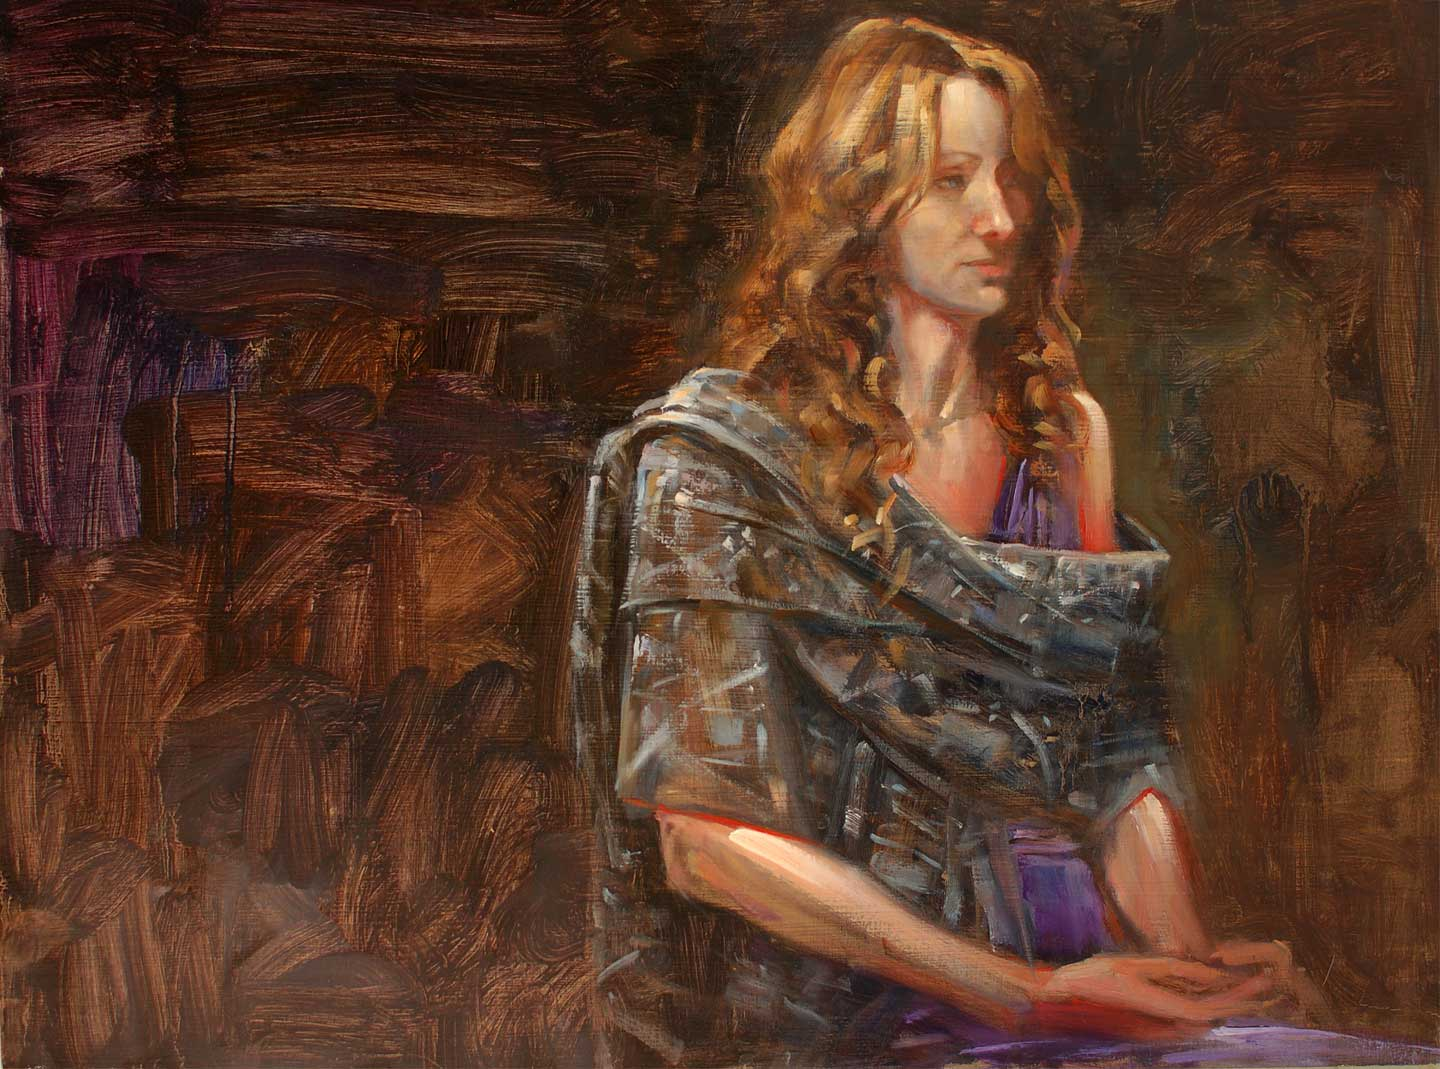 Demo study at 'Painters at Painters' 18 X 24 in. oil on prepared board. copyright Brent Lynch